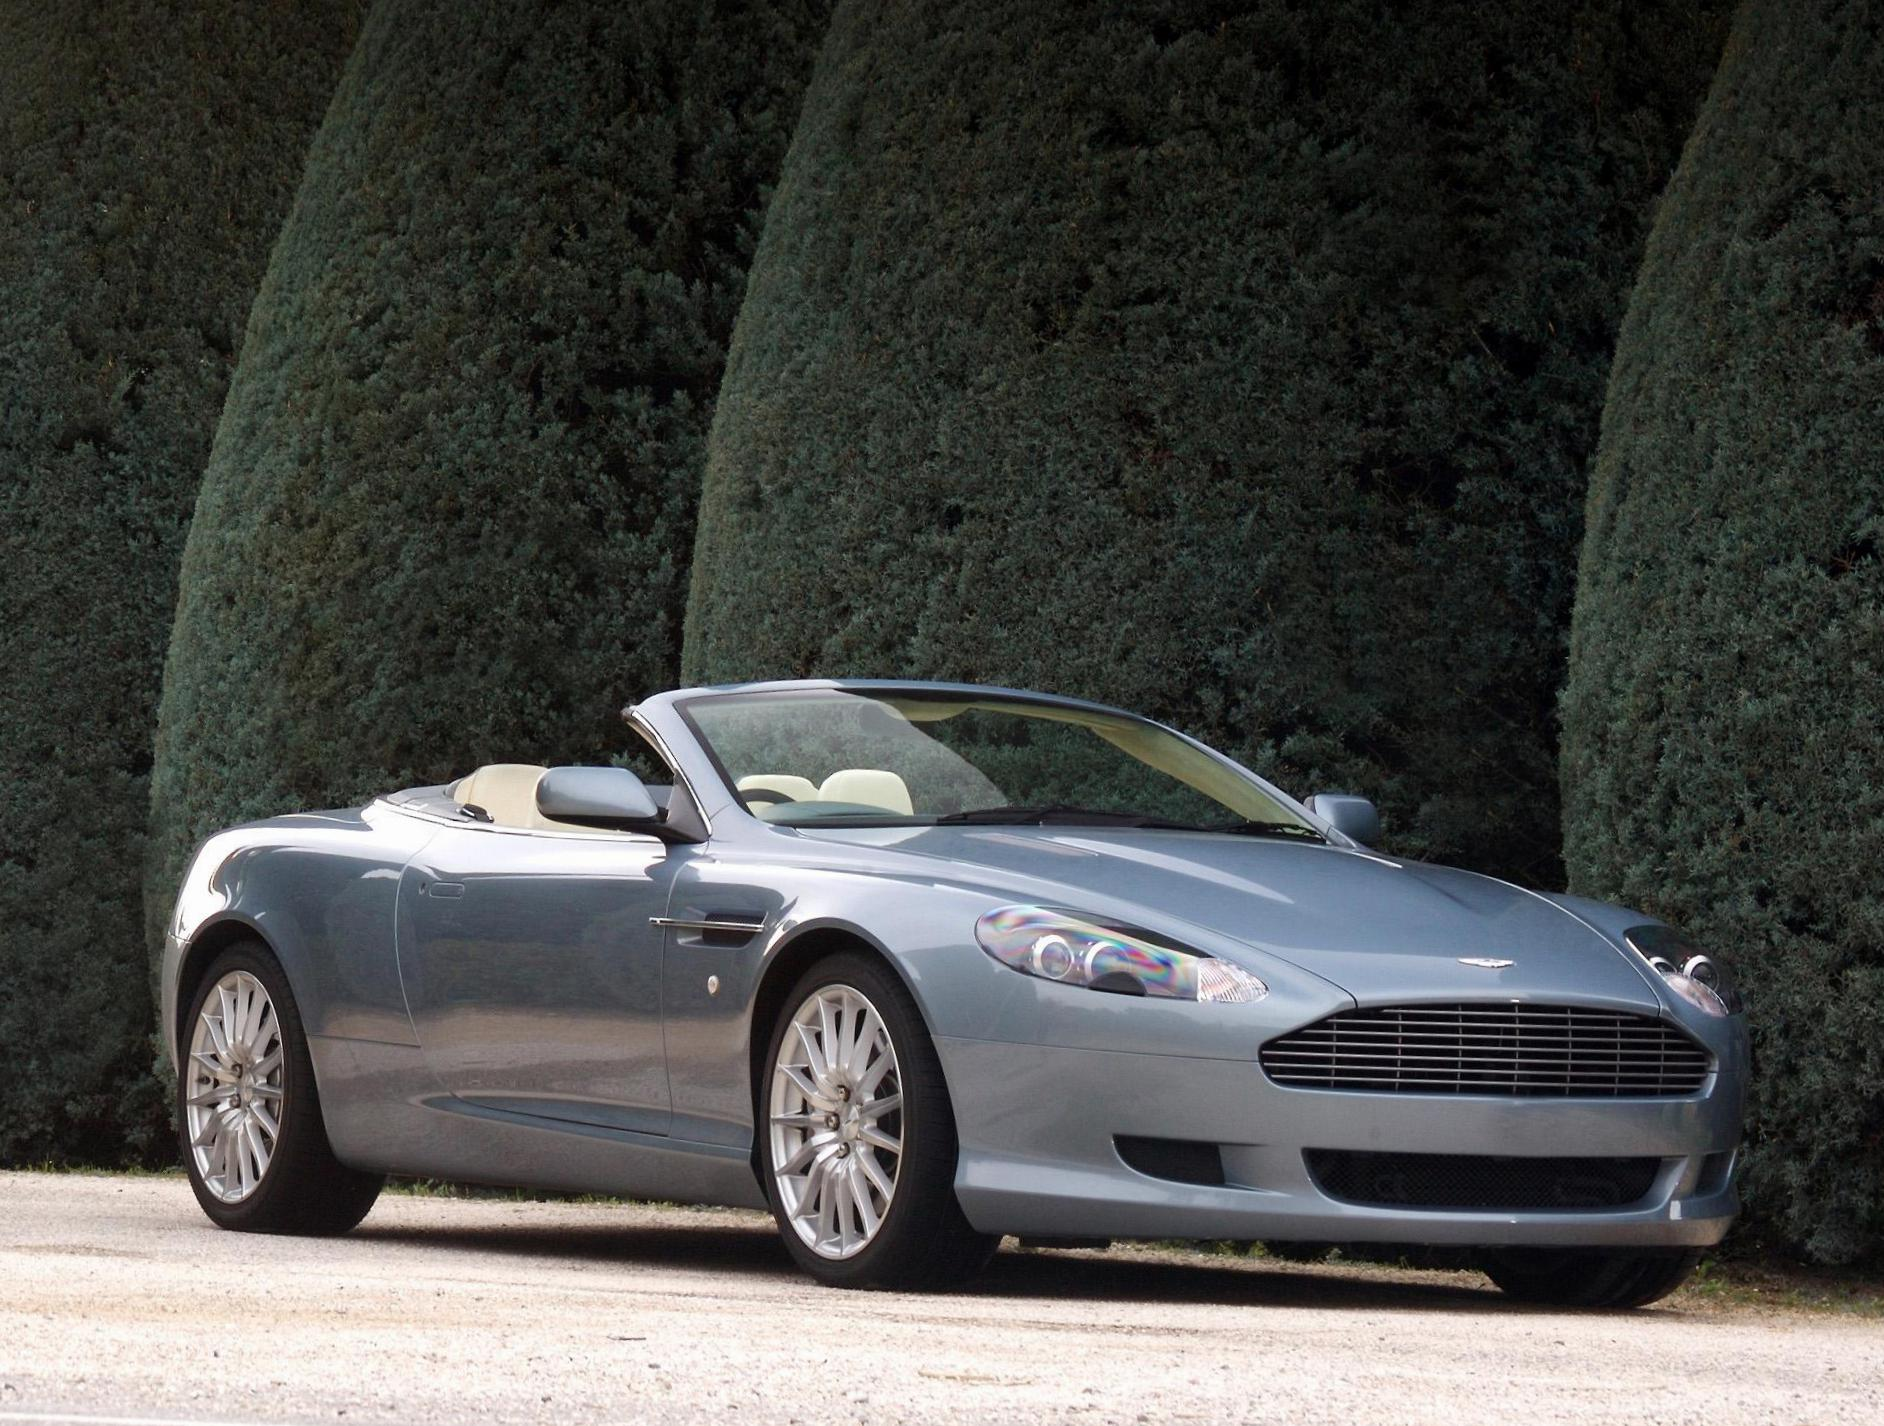 DB9 Aston Martin configuration 2014